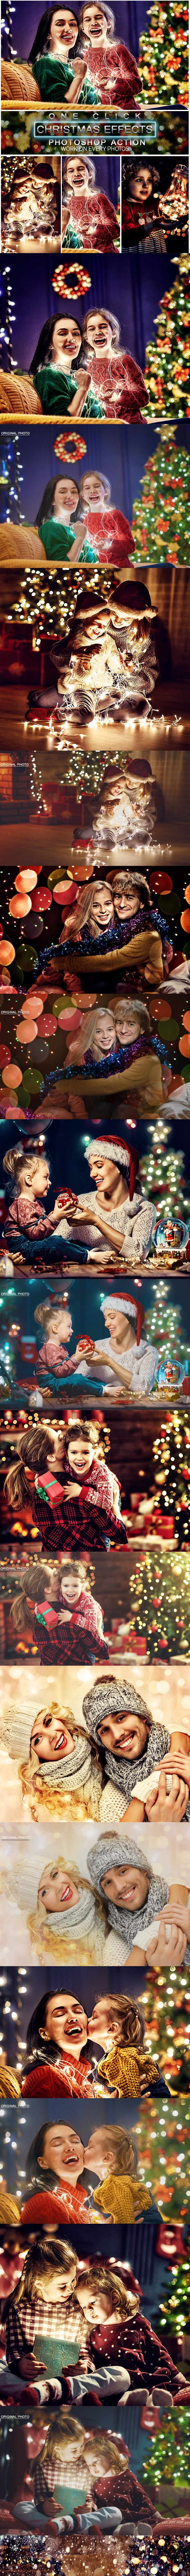 Christmas Photoshop Action - Actions Photoshop